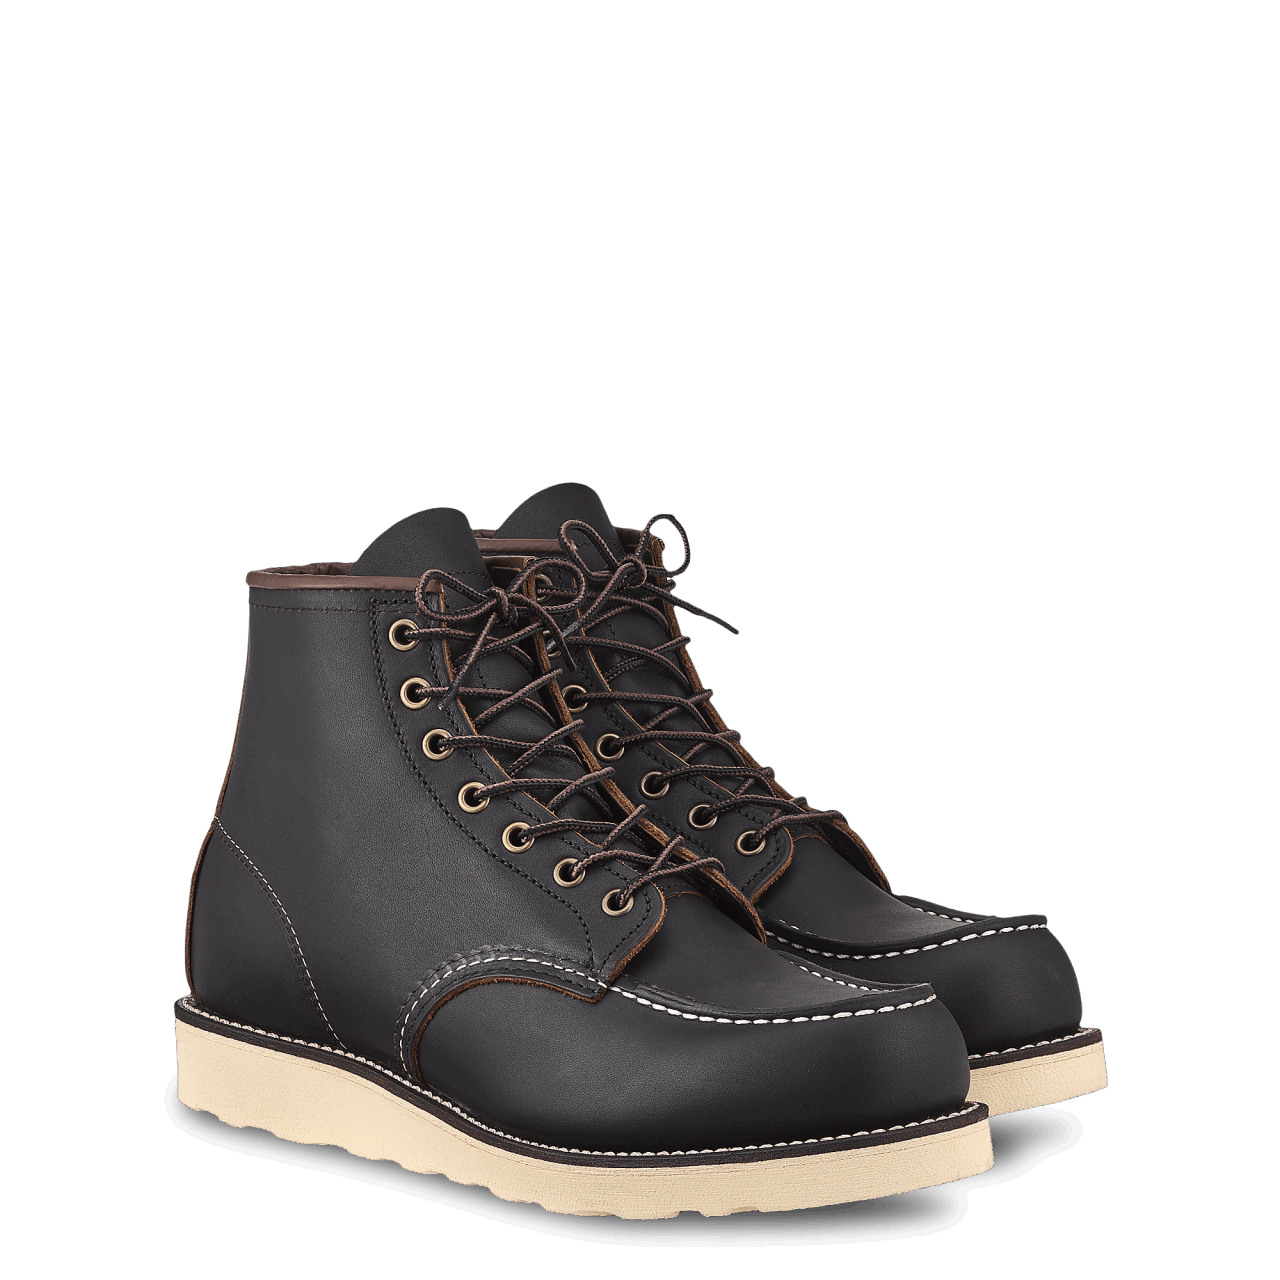 Red Wing 8849 Classic Moc